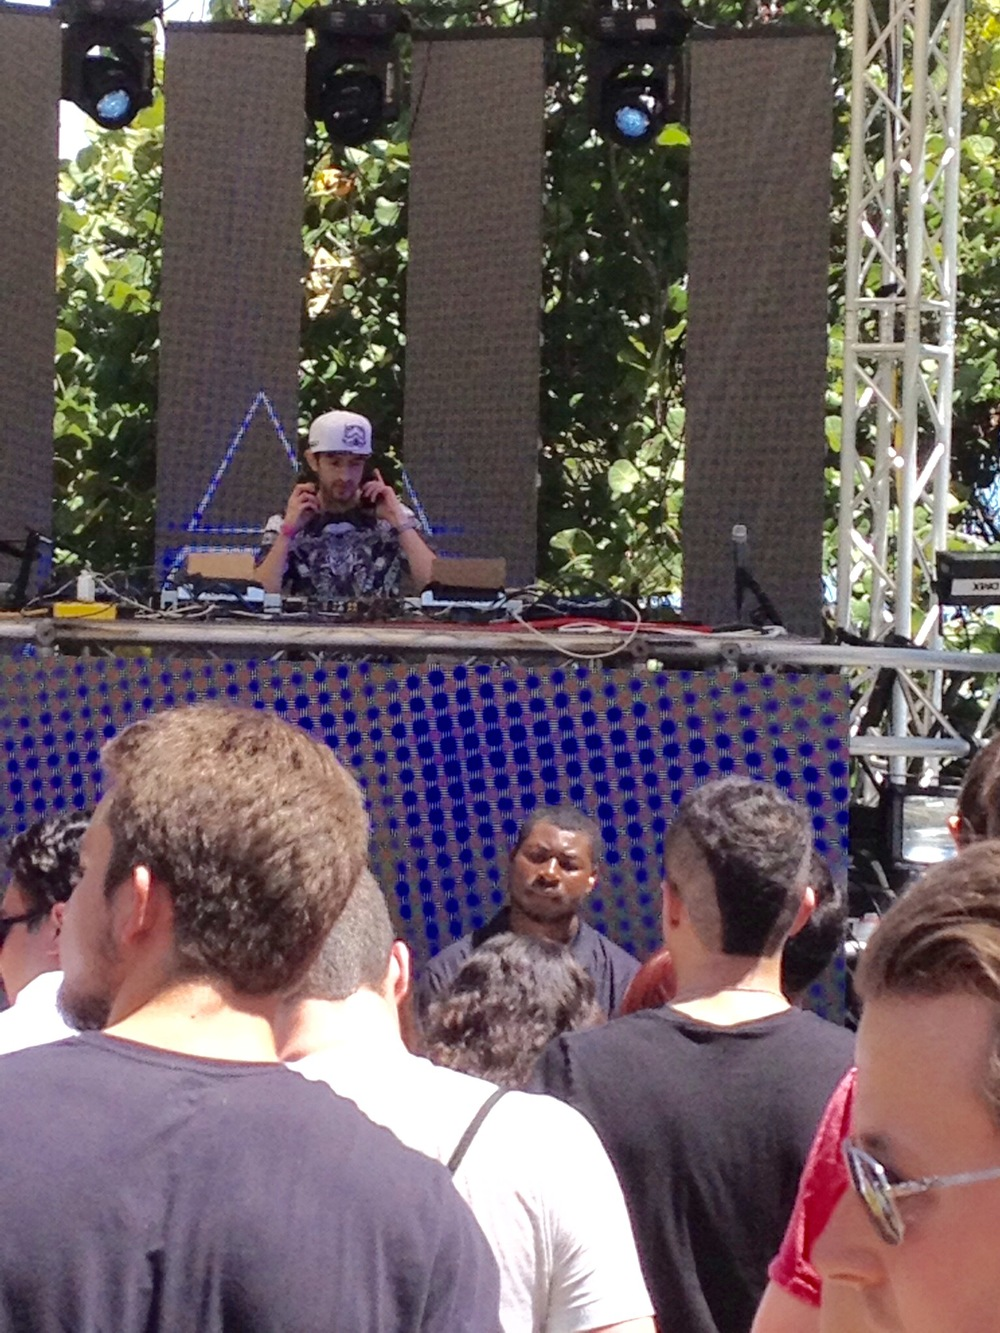 Mat Zo plays at the Anjunabeats pool party.